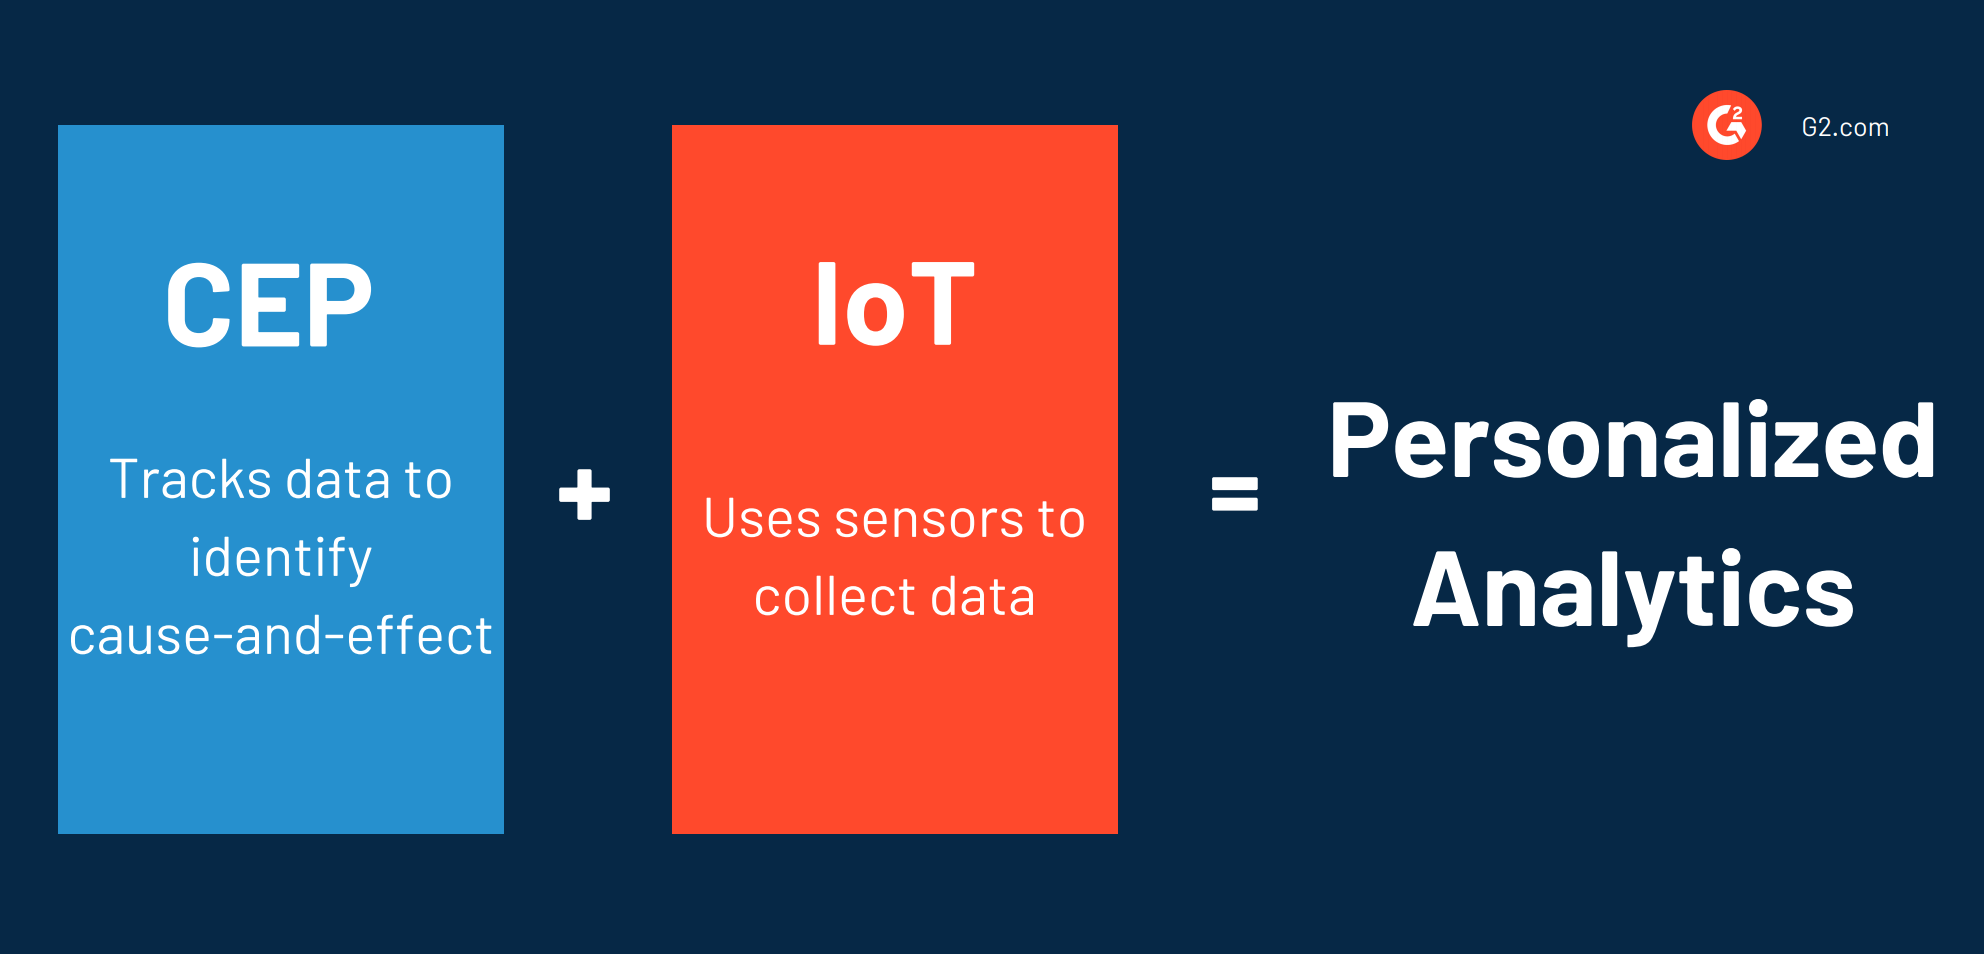 CEP and IoT